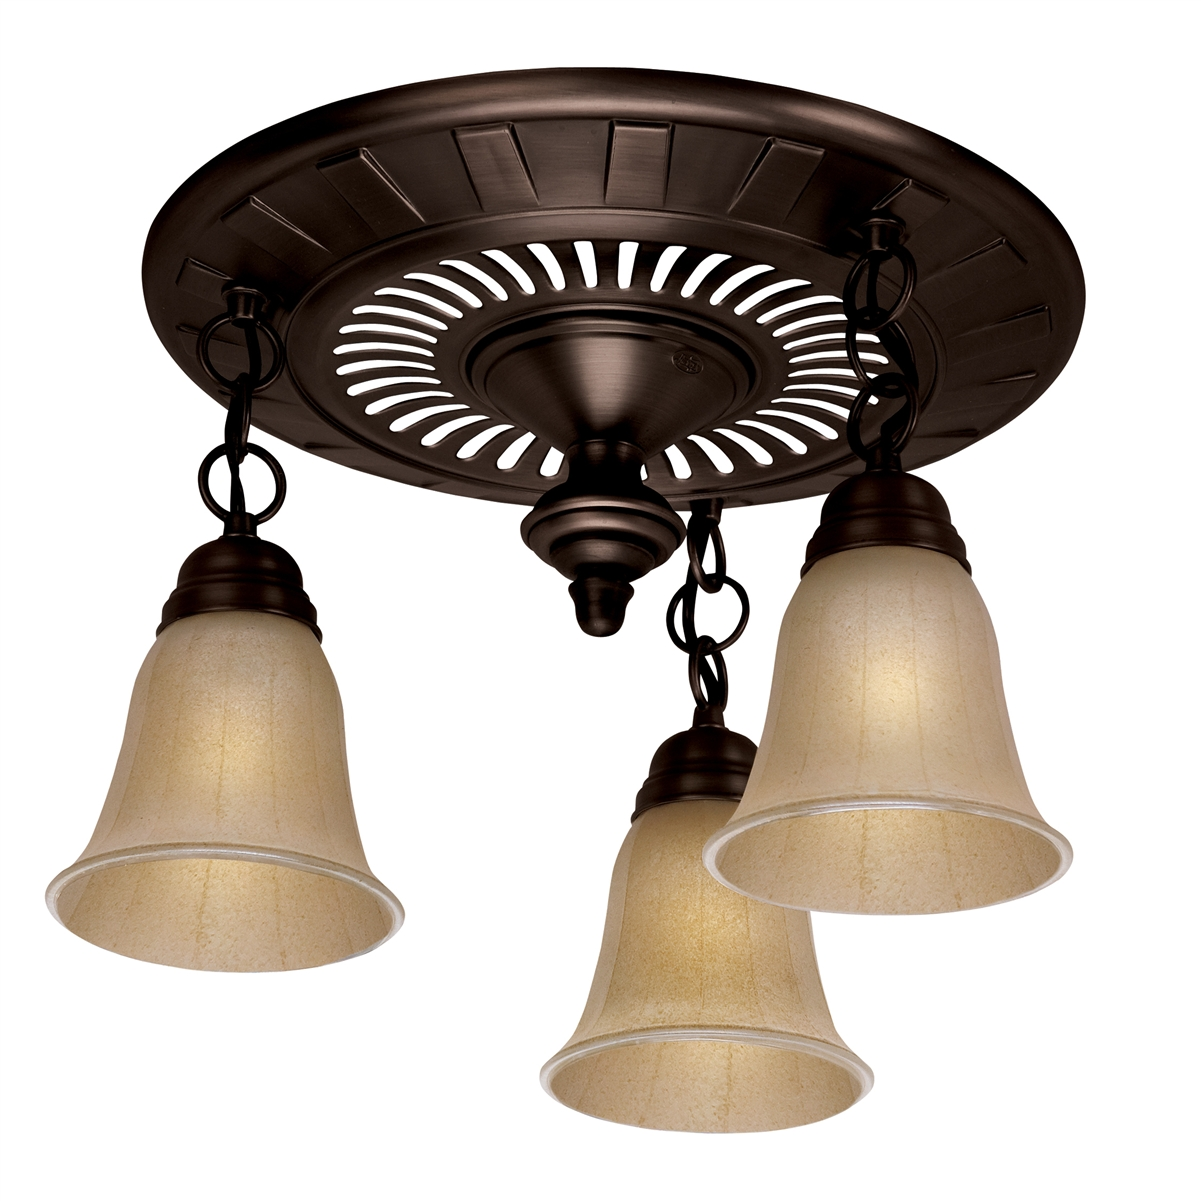 Garden District 3-Light Bathroom Fan - Oil Rubbed Bronze (80707)